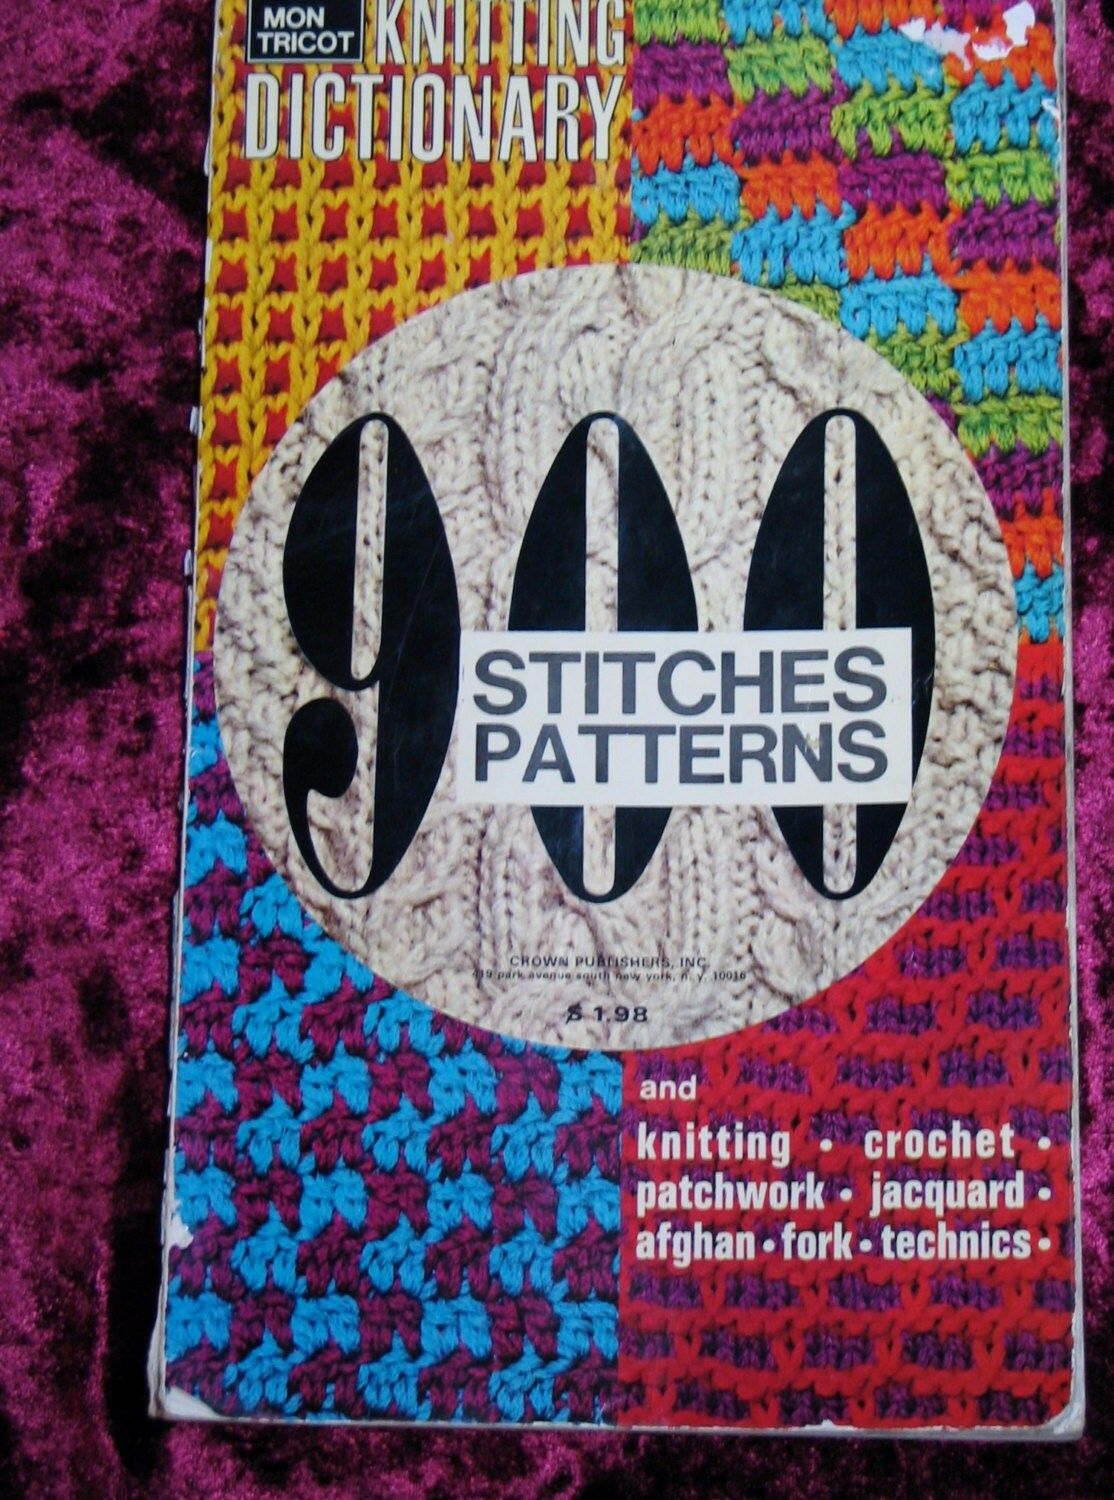 Knitting Stitches Dictionary Free : Mon Tricot Knitting Dictionary: 900 Stitches and by Jimazon